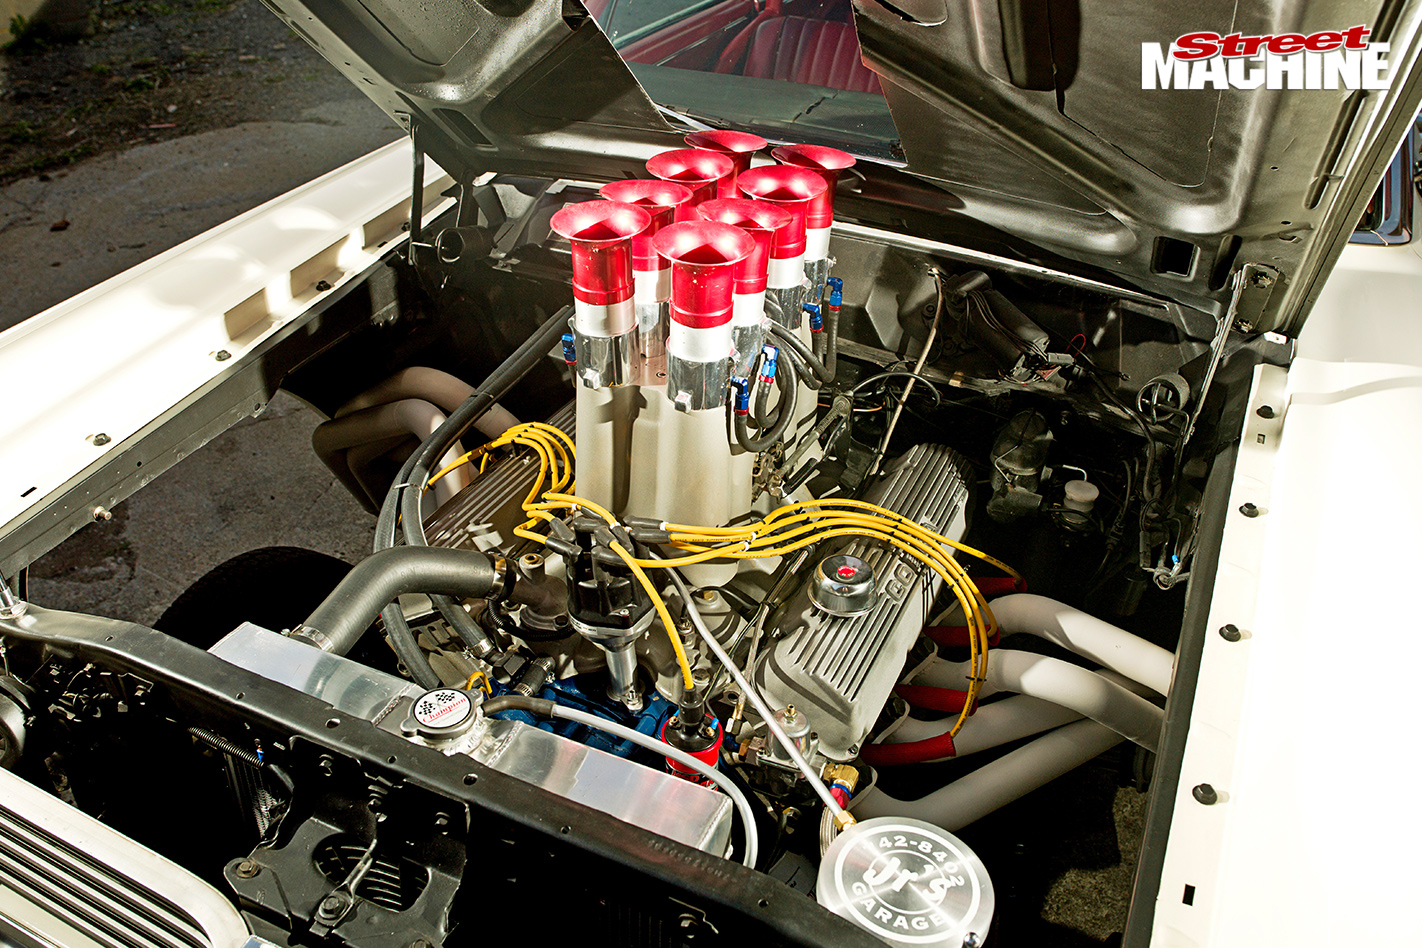 1967-MERCURY-COMET-GASSER-engine